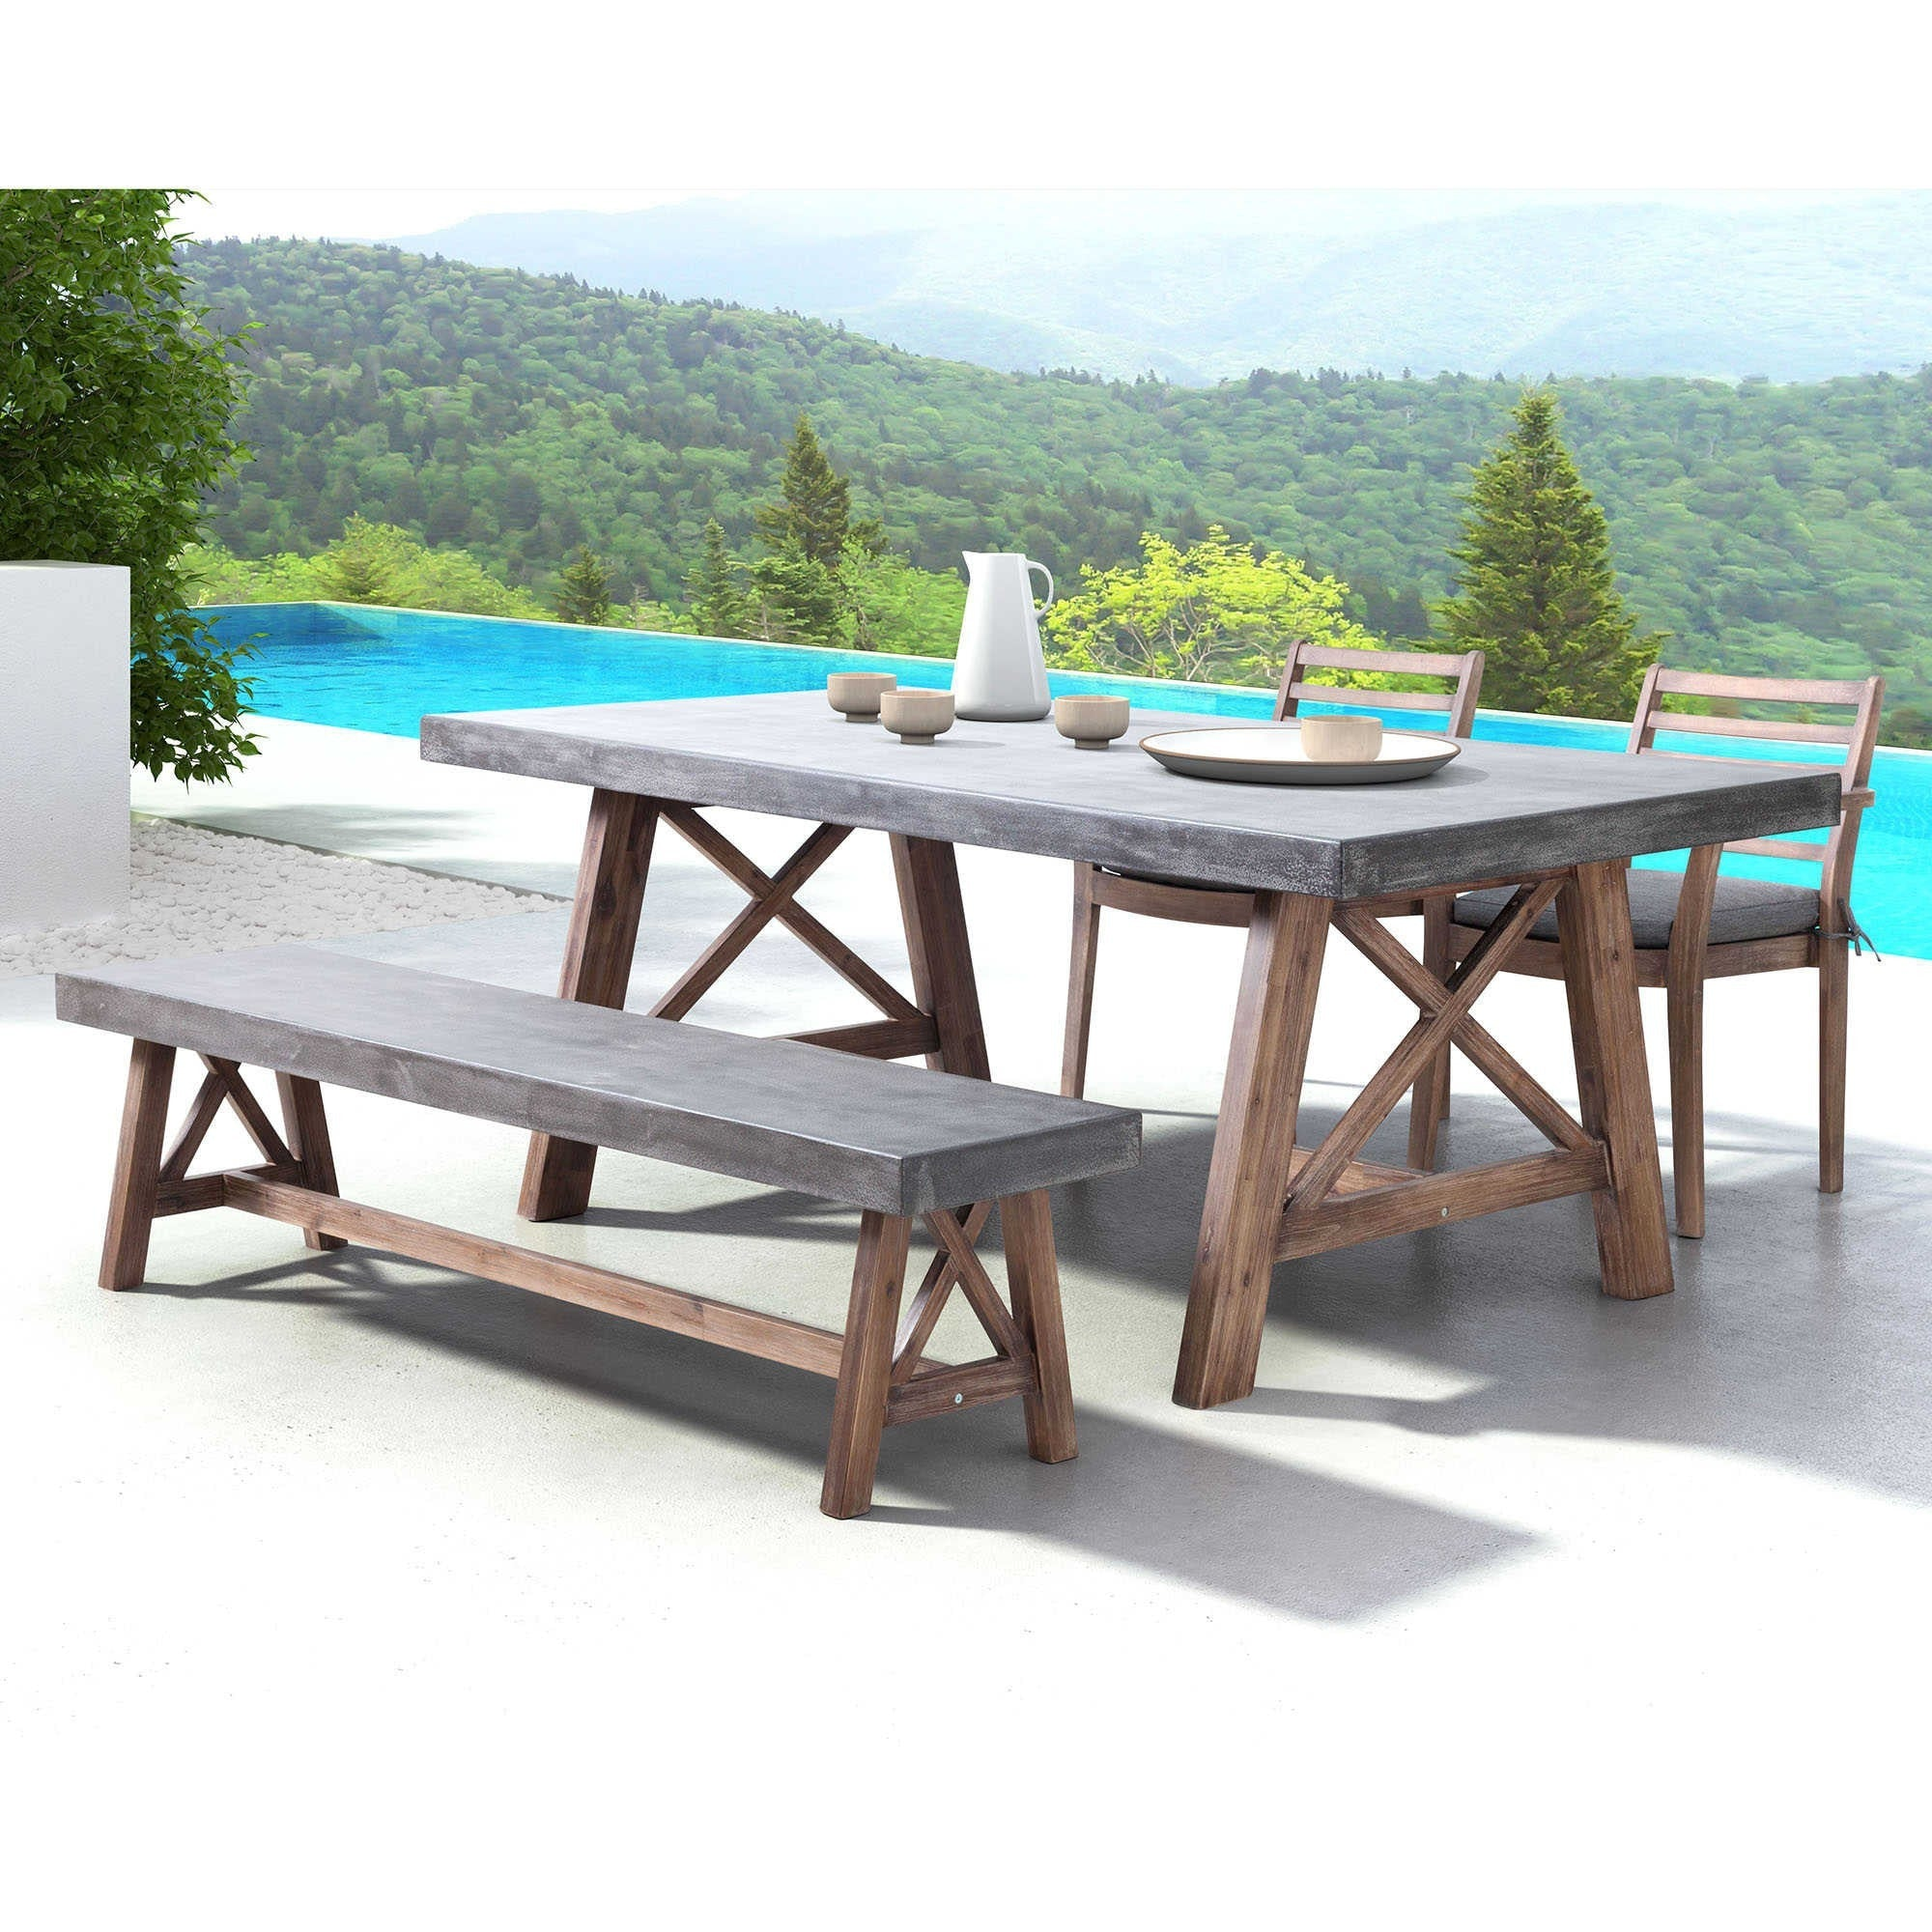 Zuo Modern Ford Outdoor Patio Dining Set Cement U0026 Acacia Wood Natural  703594 OPD S1